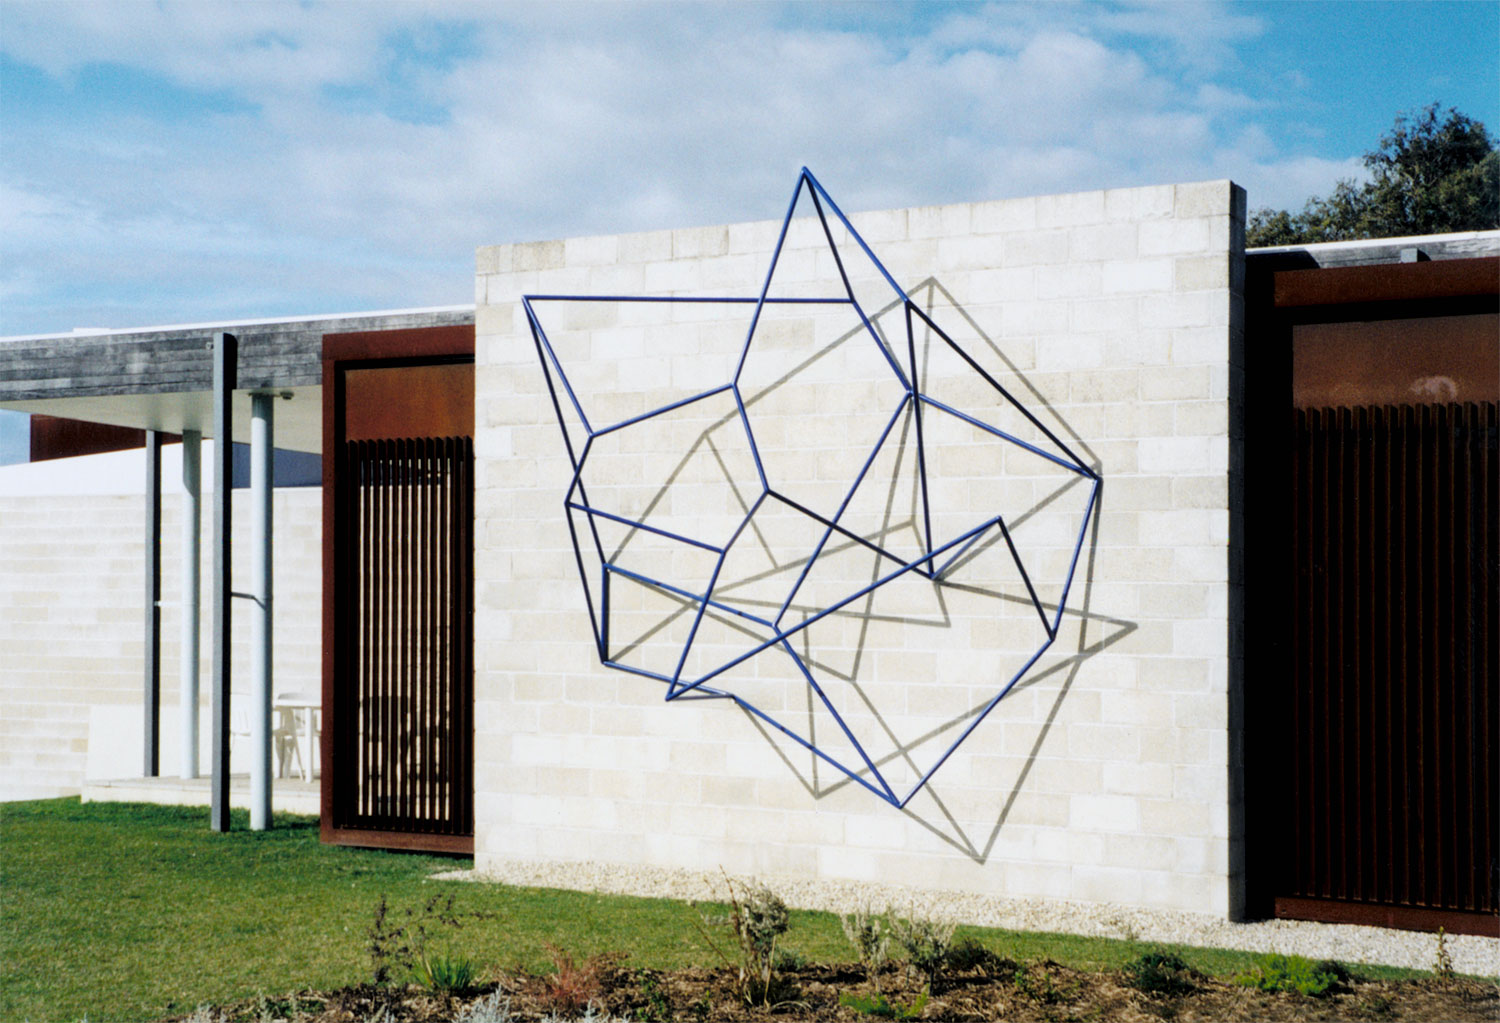 Double Vision #2,  2002 Painted Steel, 300 x 200 x 100cm Collection McClelland Gallery + Sculpture Park